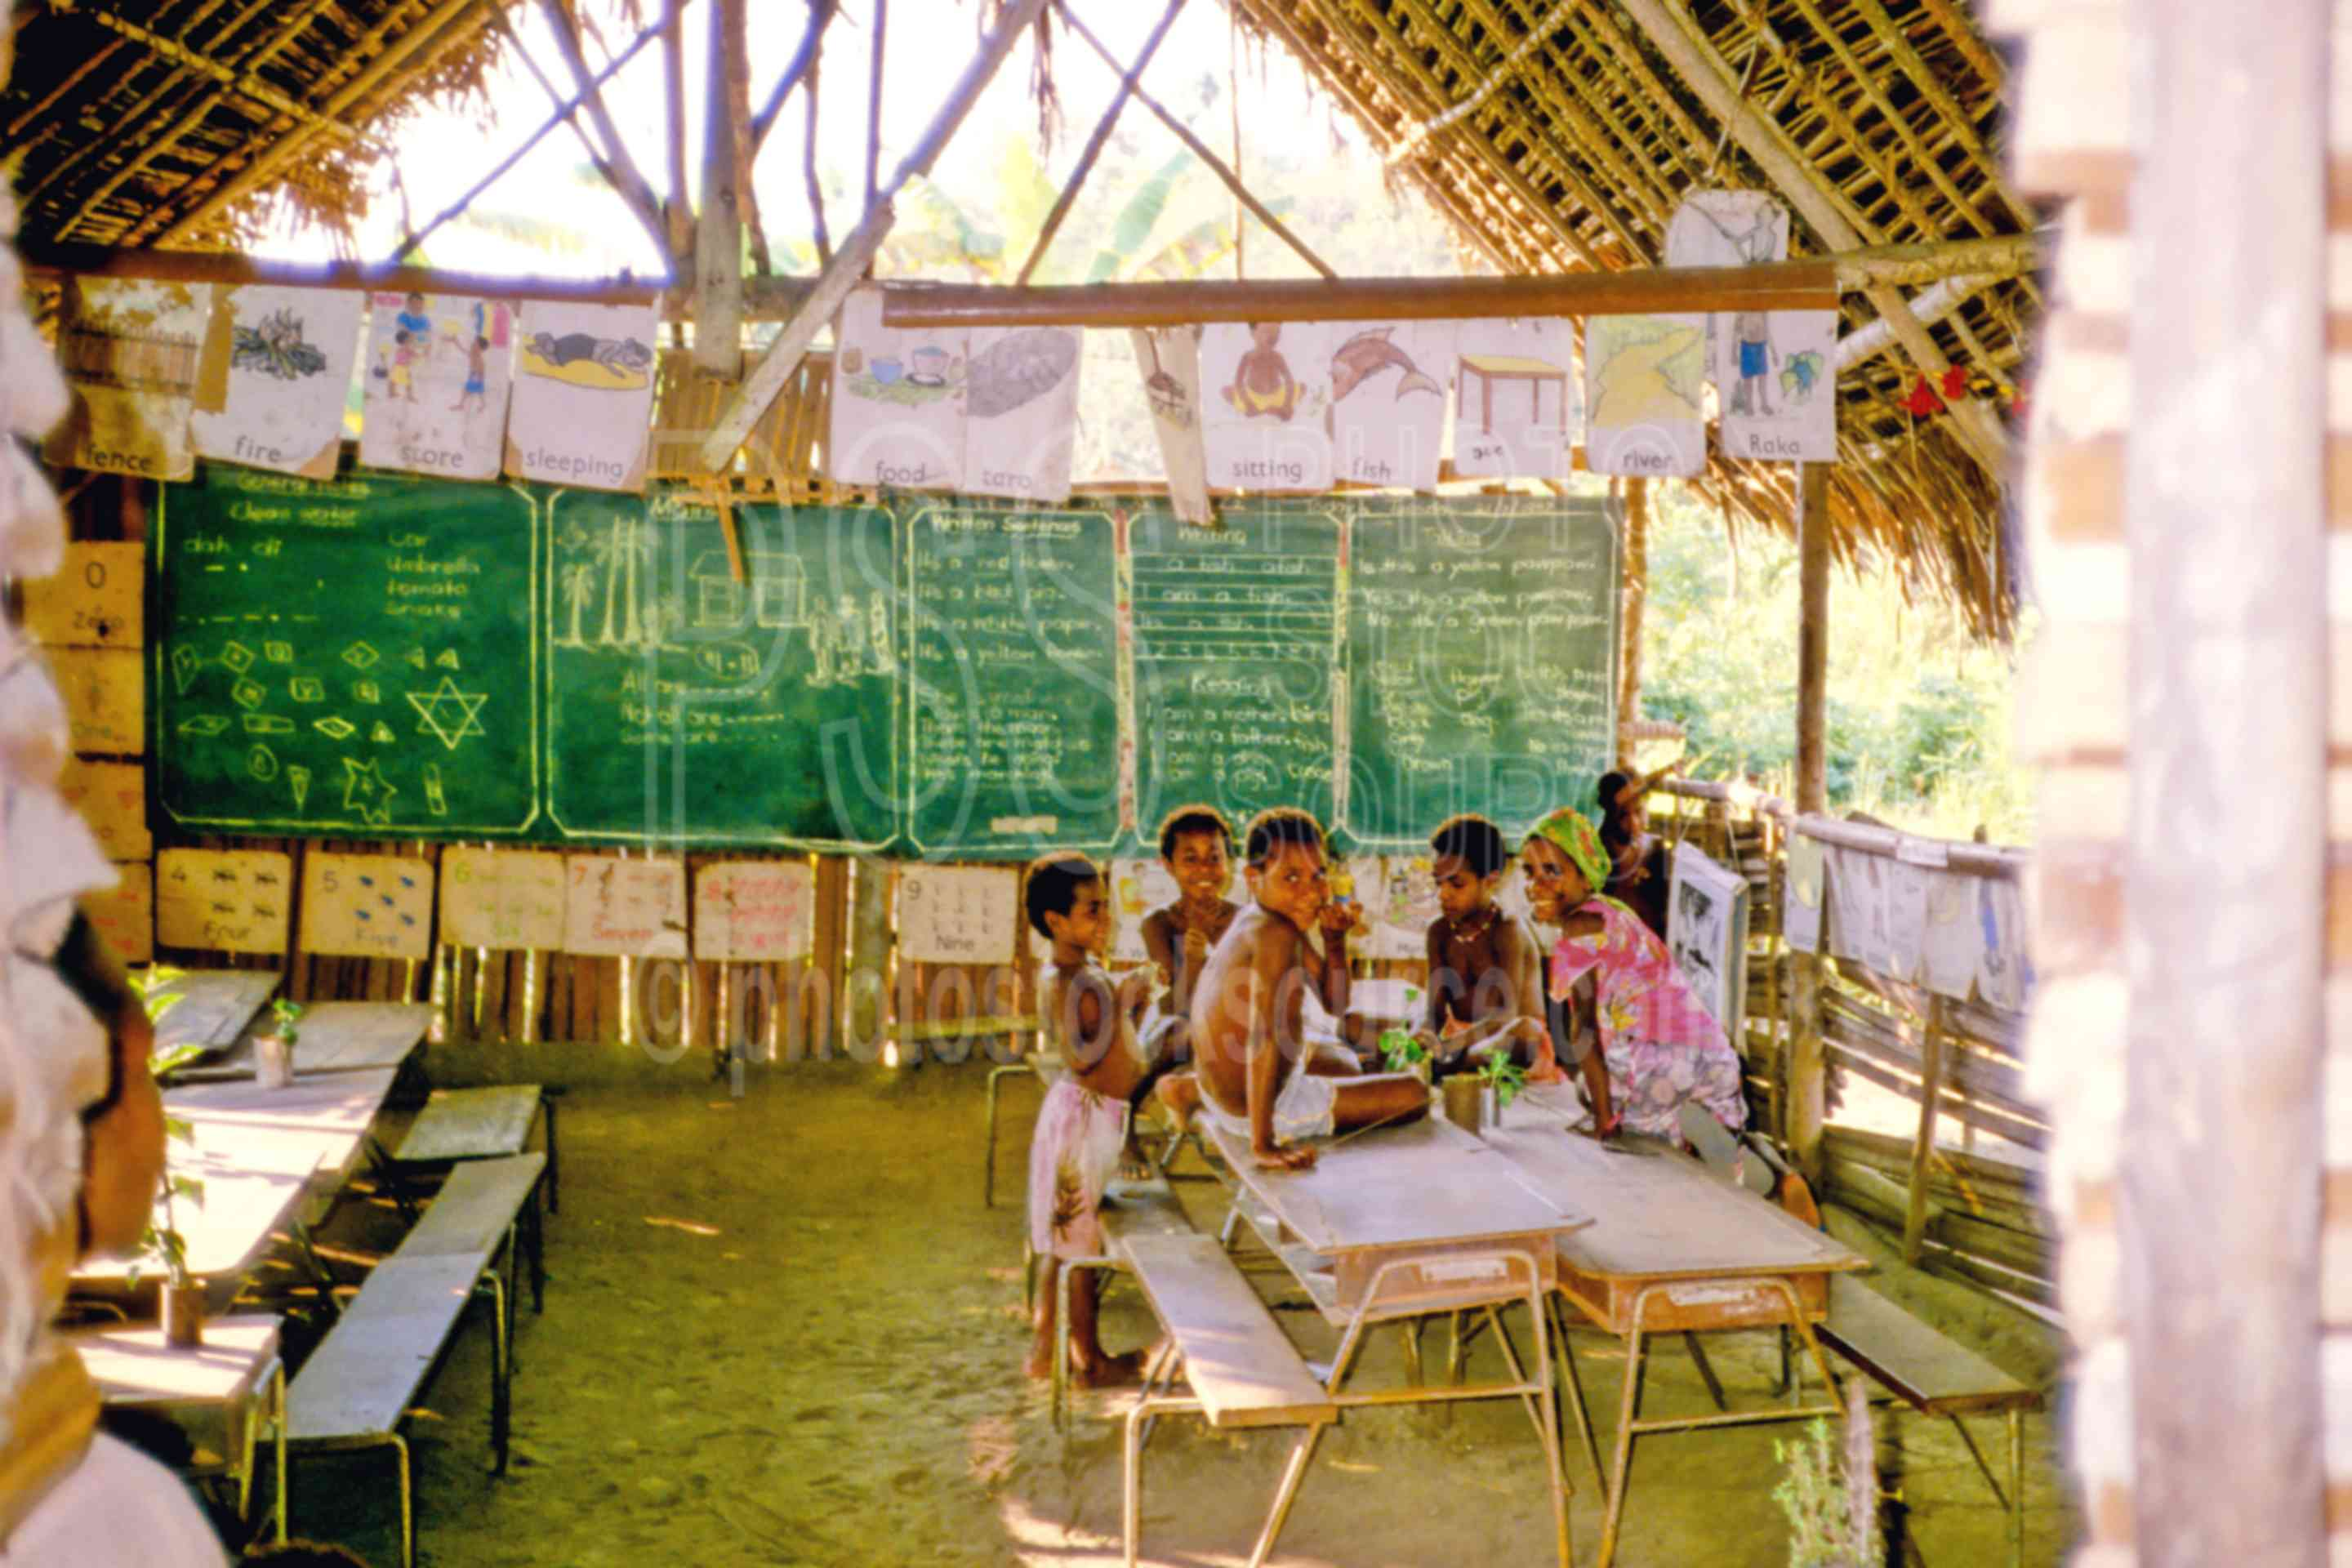 School Children,children,school,school house,classroom